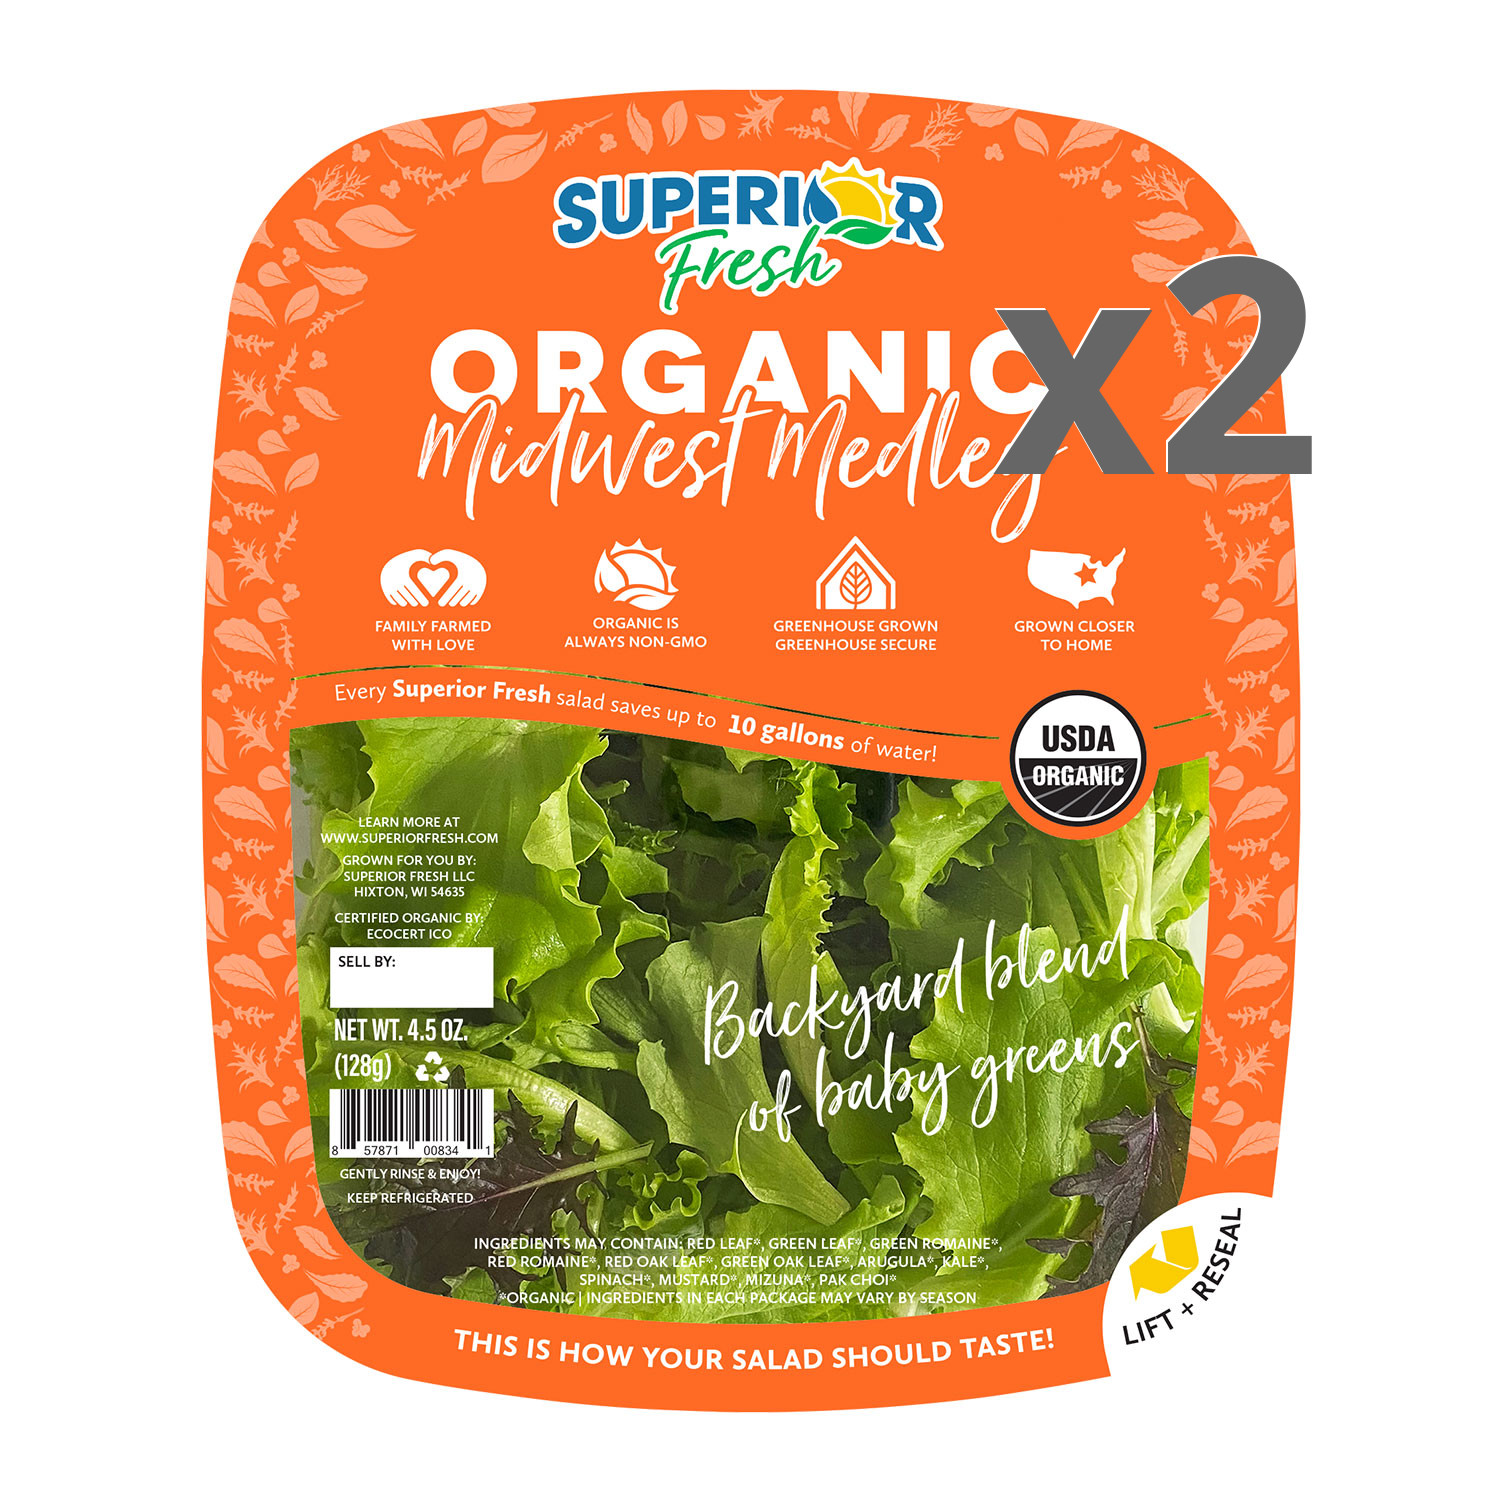 Greens, Midwest Medley-Organic (2-Pack)